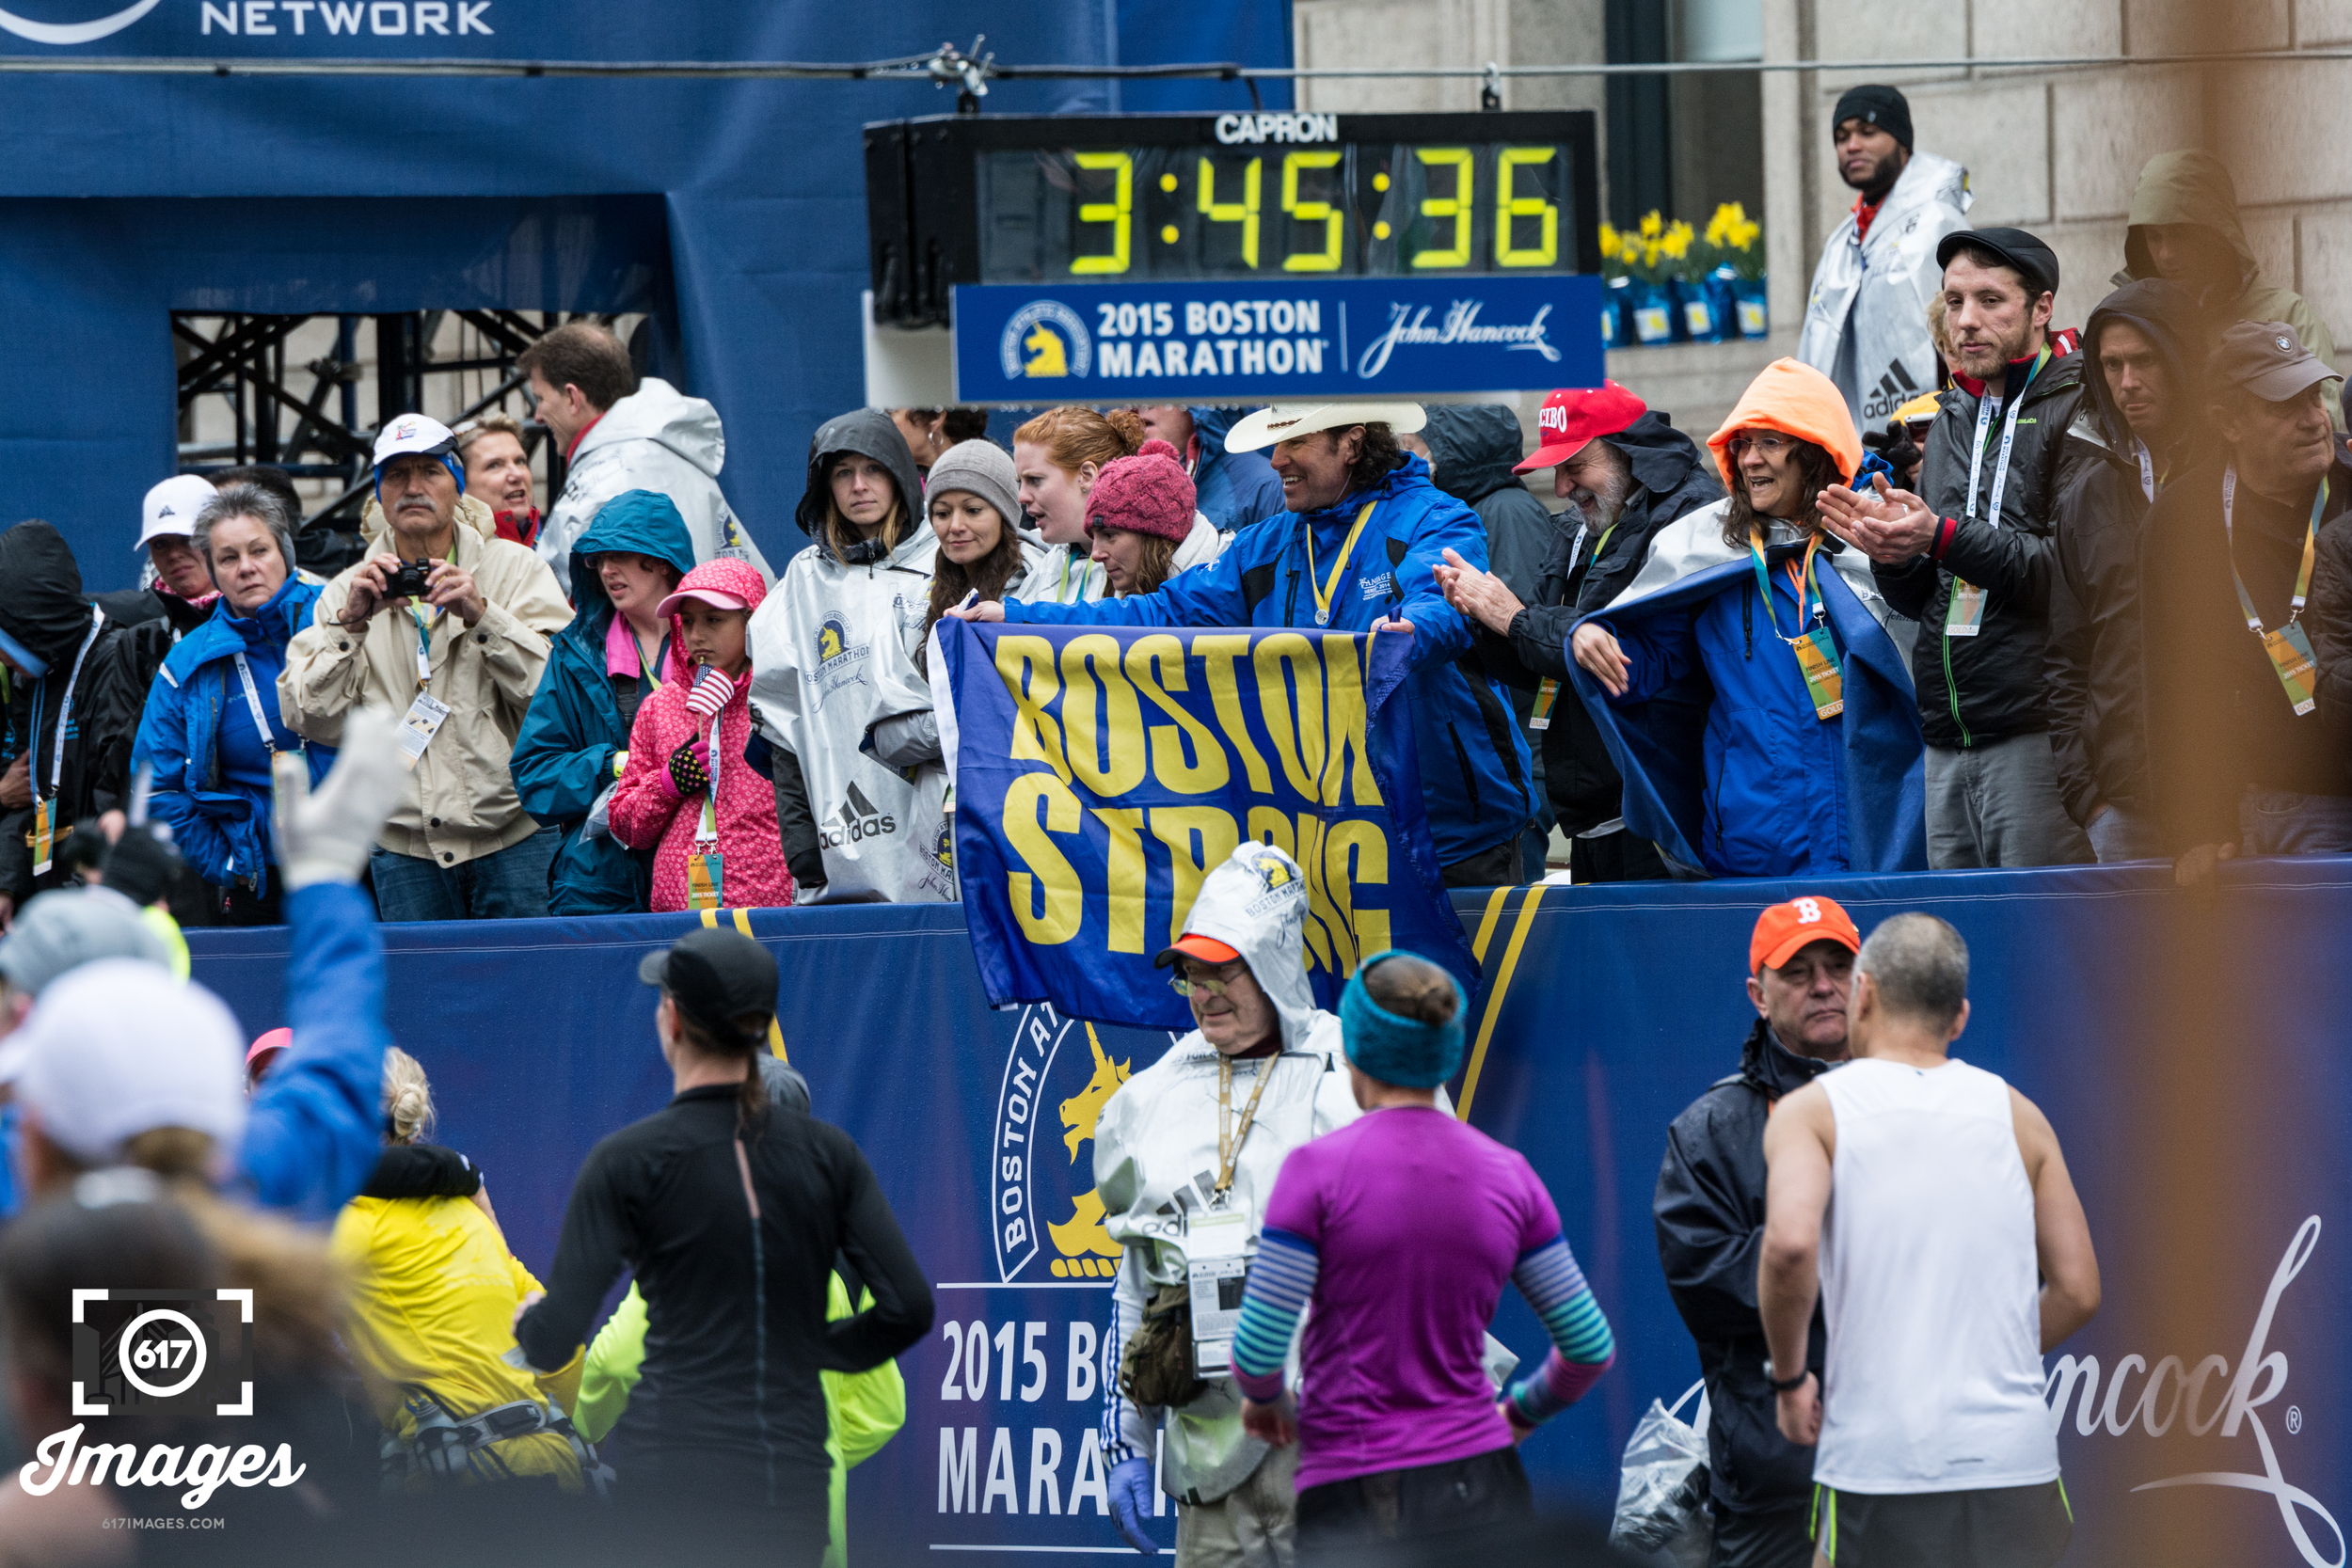 Carlos Arredondo waves his Boston Strong flag as runners cross the finish line.